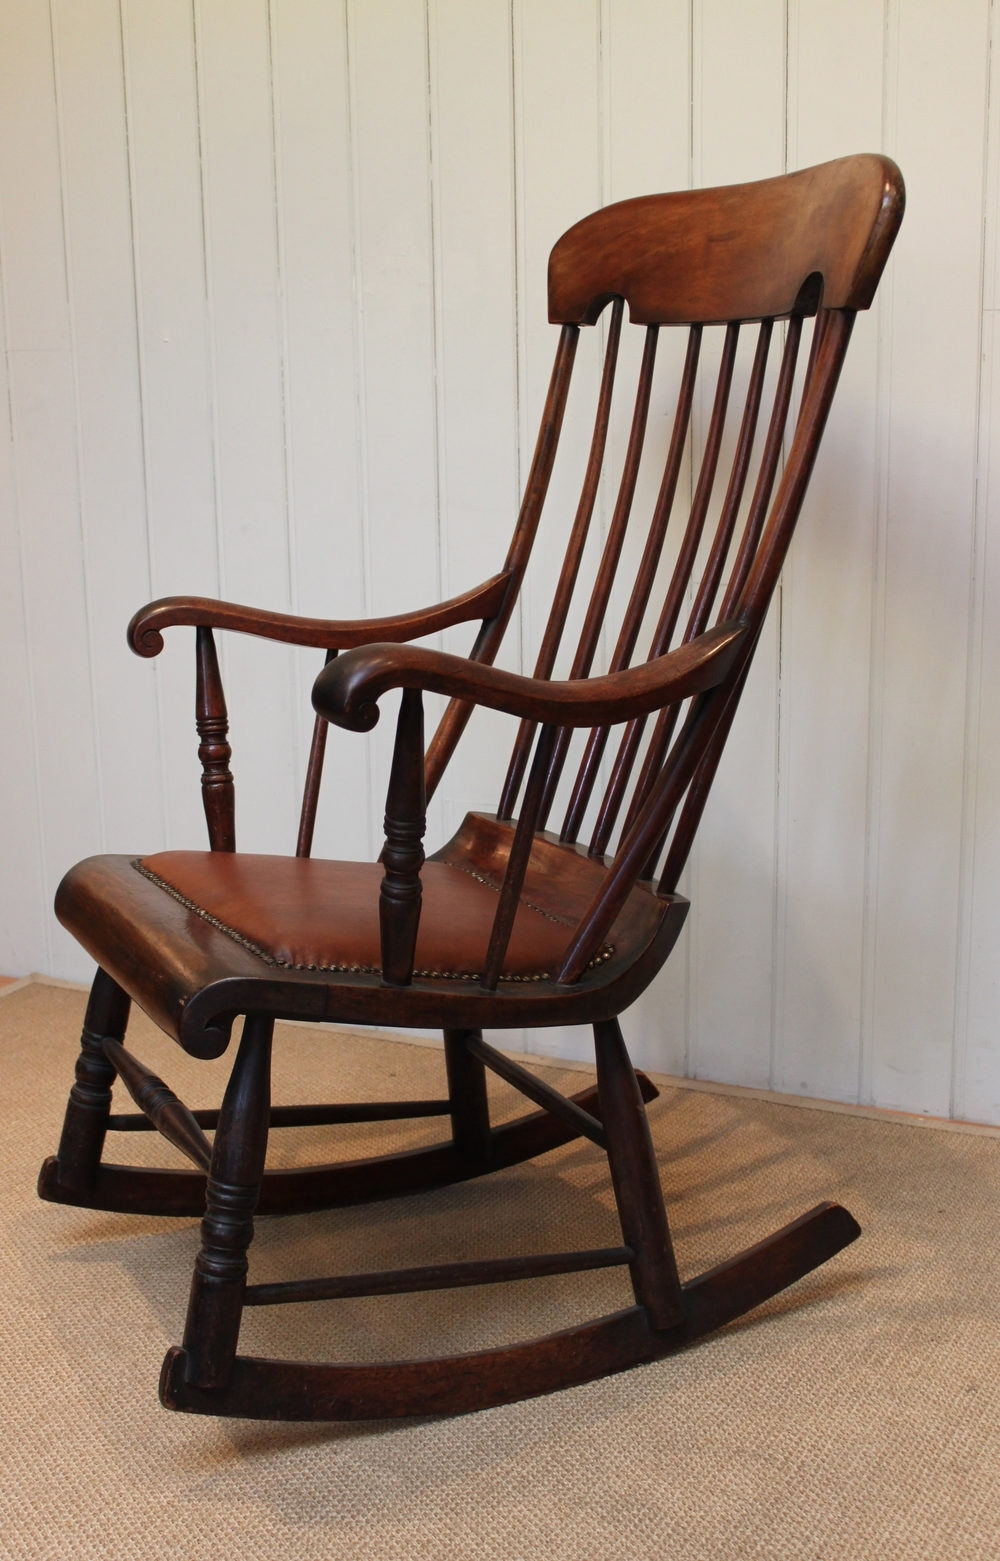 Fashionable 54 Antique Rocking Chair, Online Get Cheap Antique Rocking Chairs Intended For Victorian Rocking Chairs (View 3 of 15)